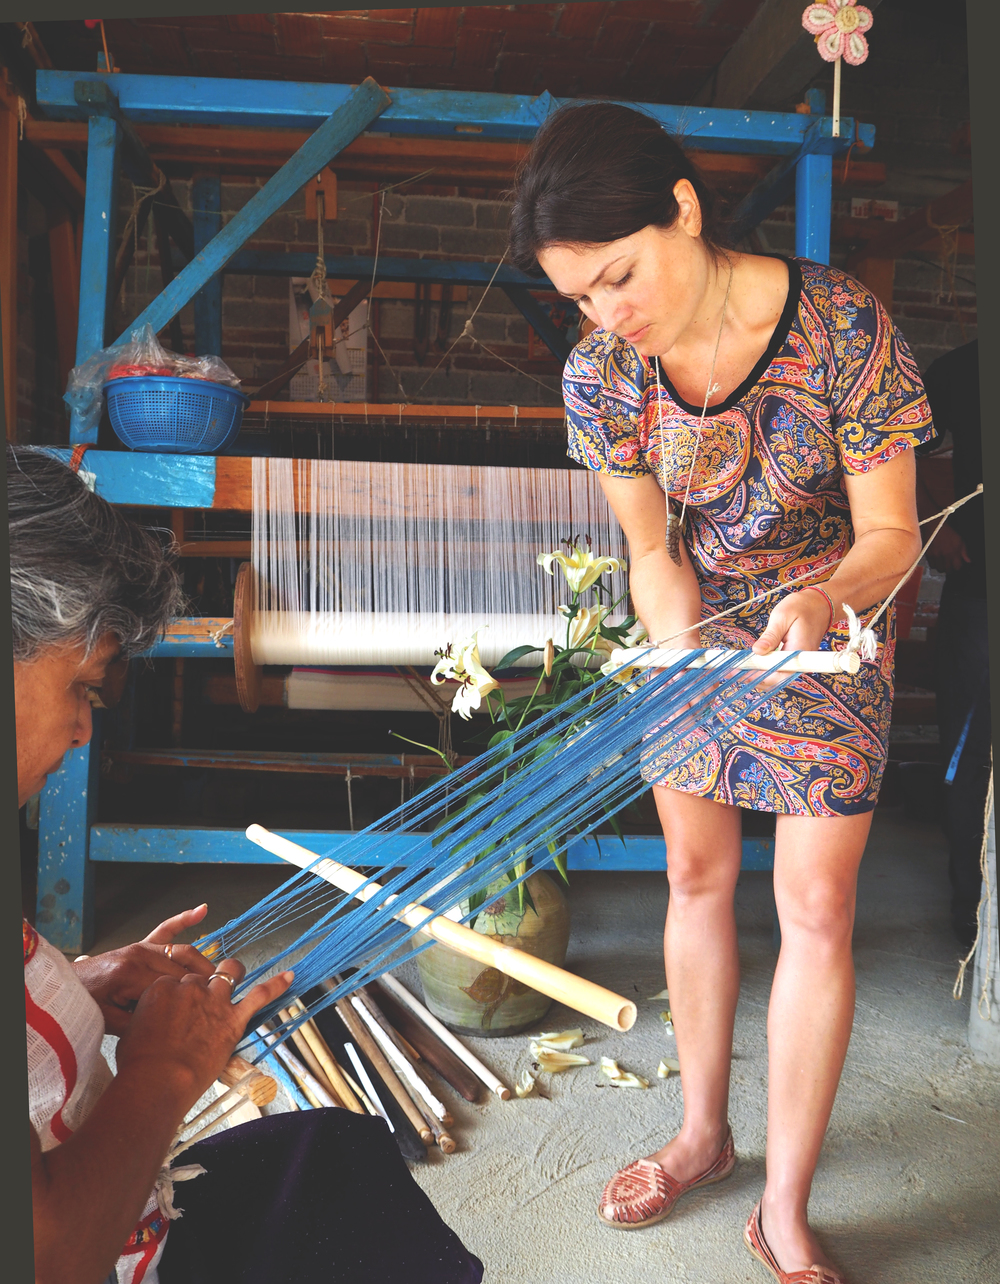 Warping the loom with indigo dyed cotton